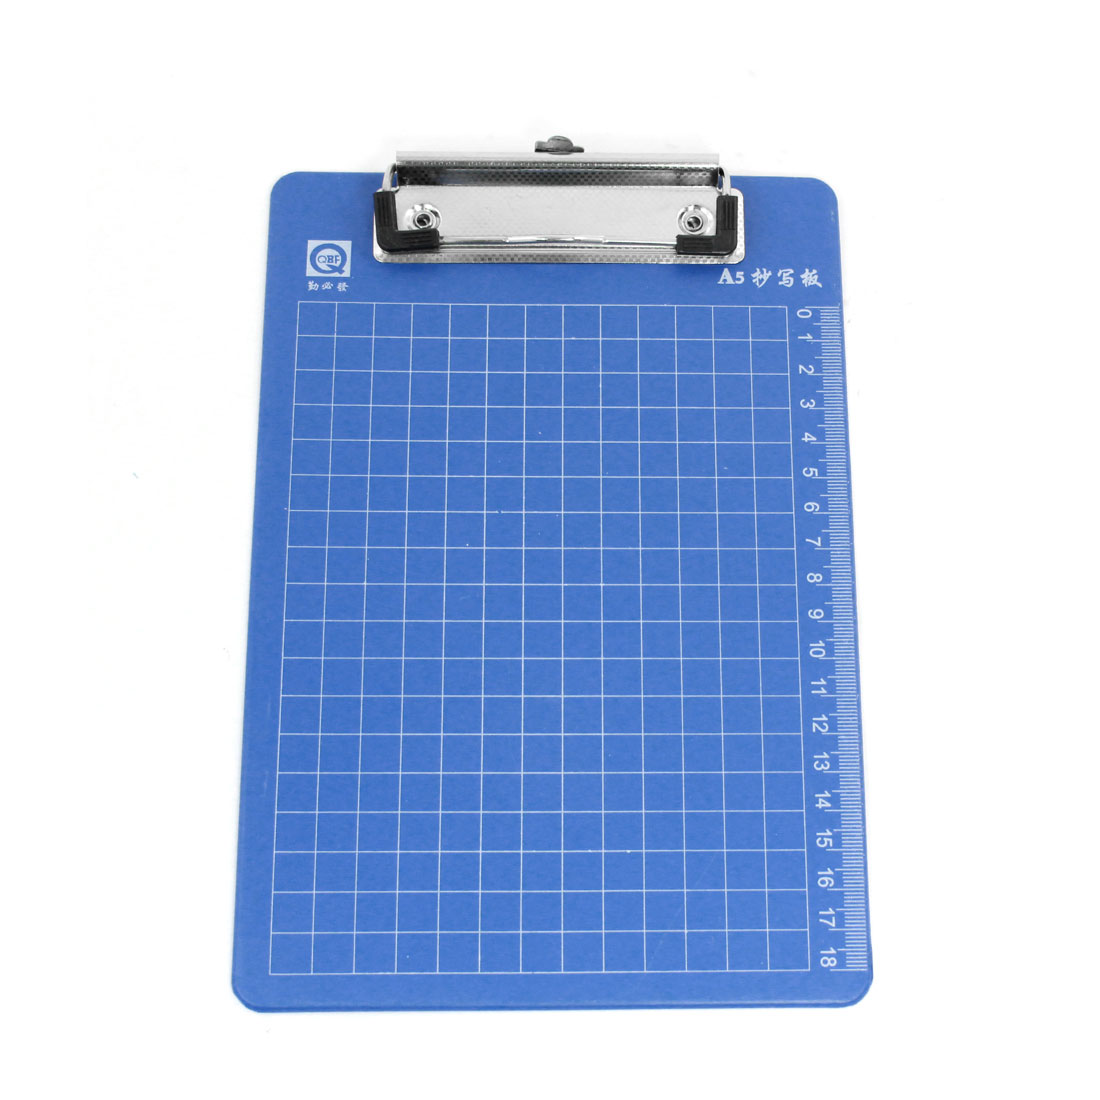 Home Office A5 Record List Note Paper Clear Blue Clipboard Clip Board